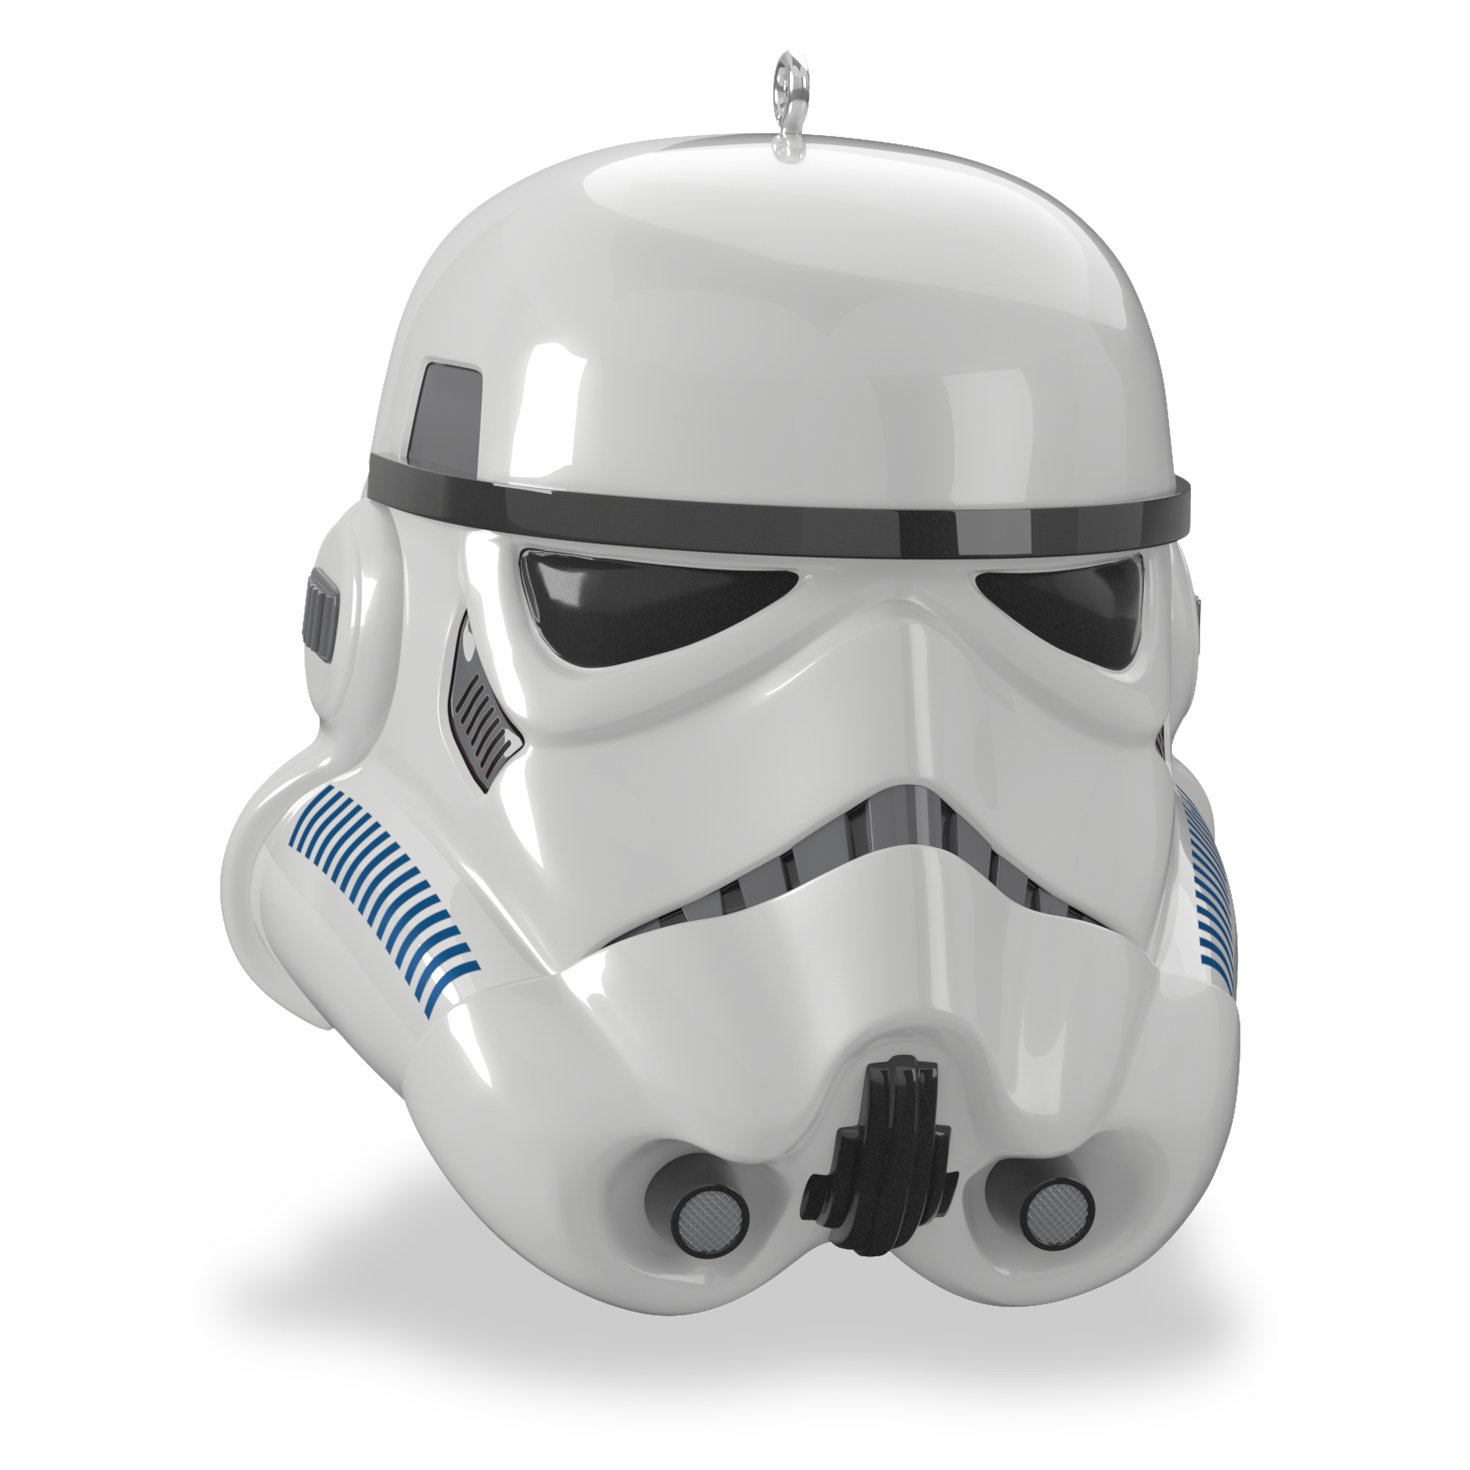 Hallmark Keepsake Star Wars Imperial Stormtrooper Helmet Ornament With Sound